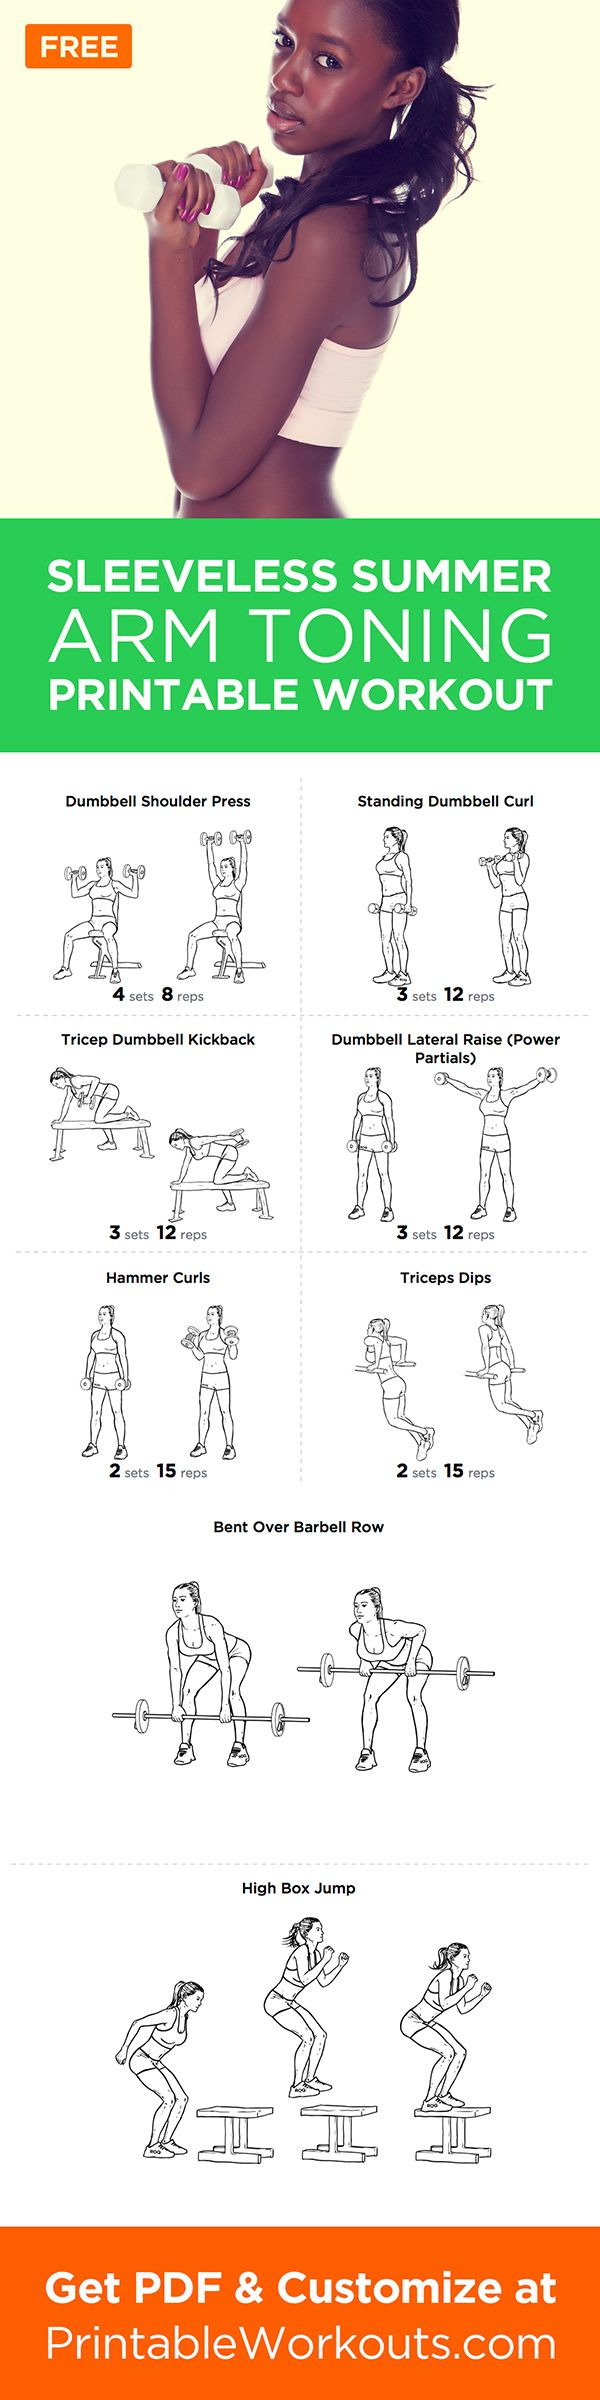 15-minute workout!